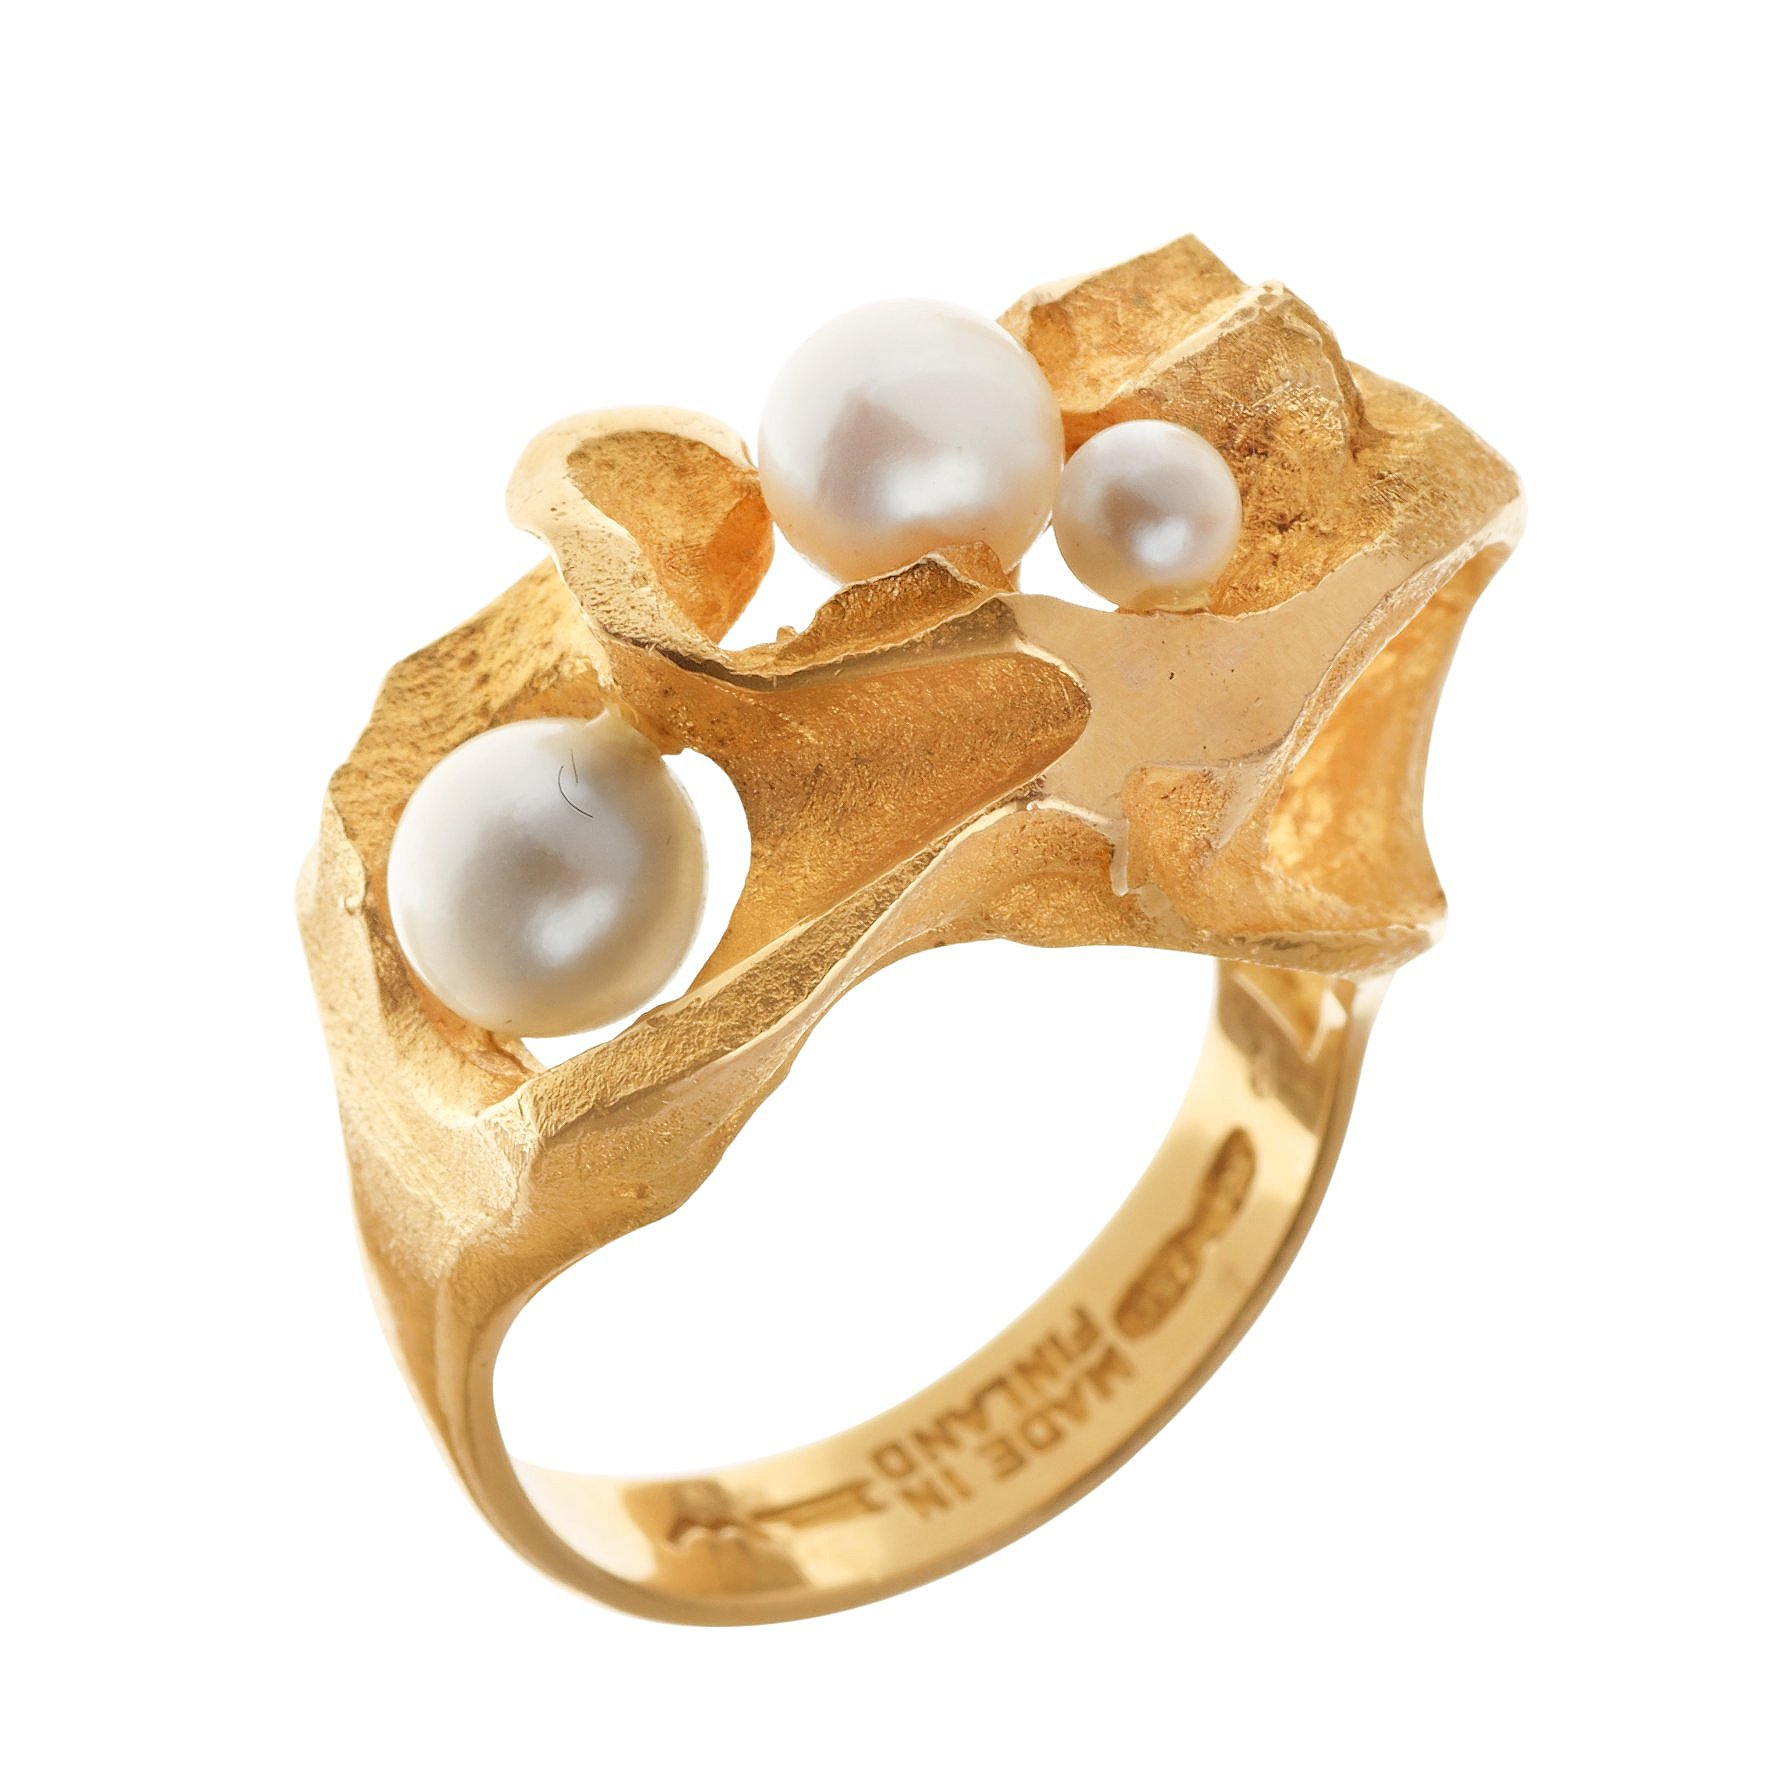 A Bjrn Weckstrm 18k gold ring with three pearls Lapponia Finland